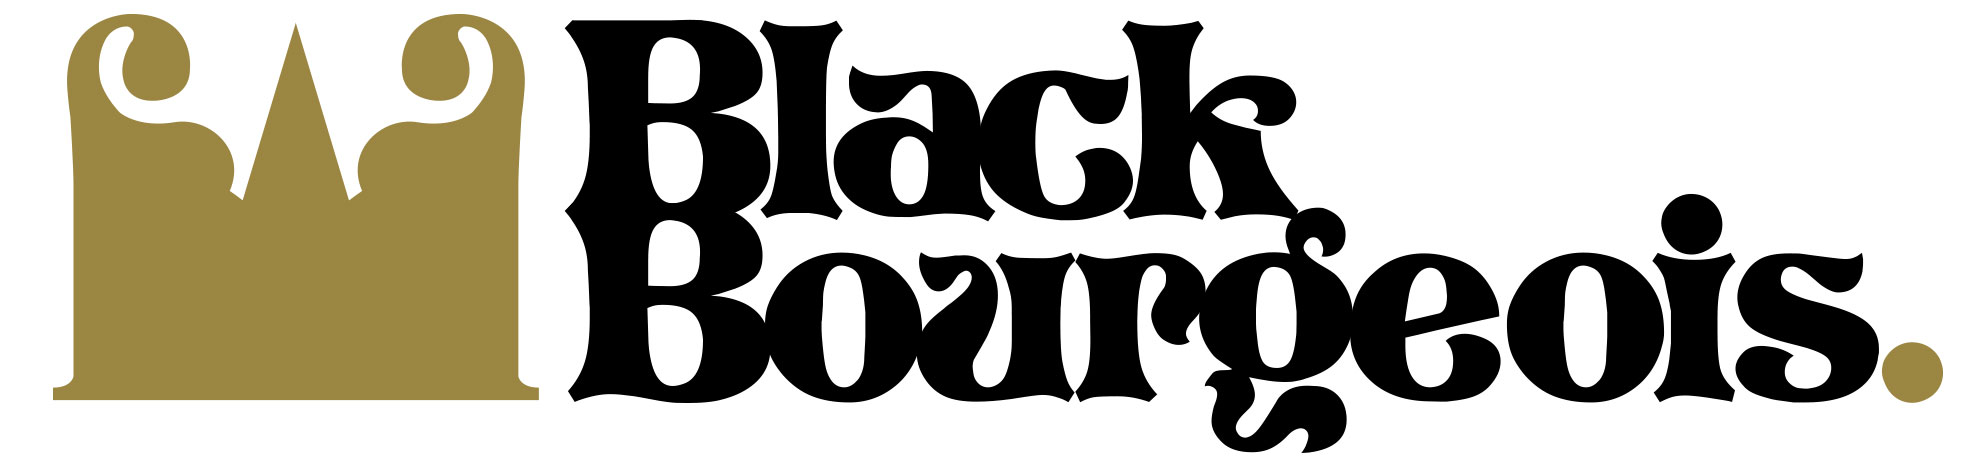 Black Bourgeois - Black Owned